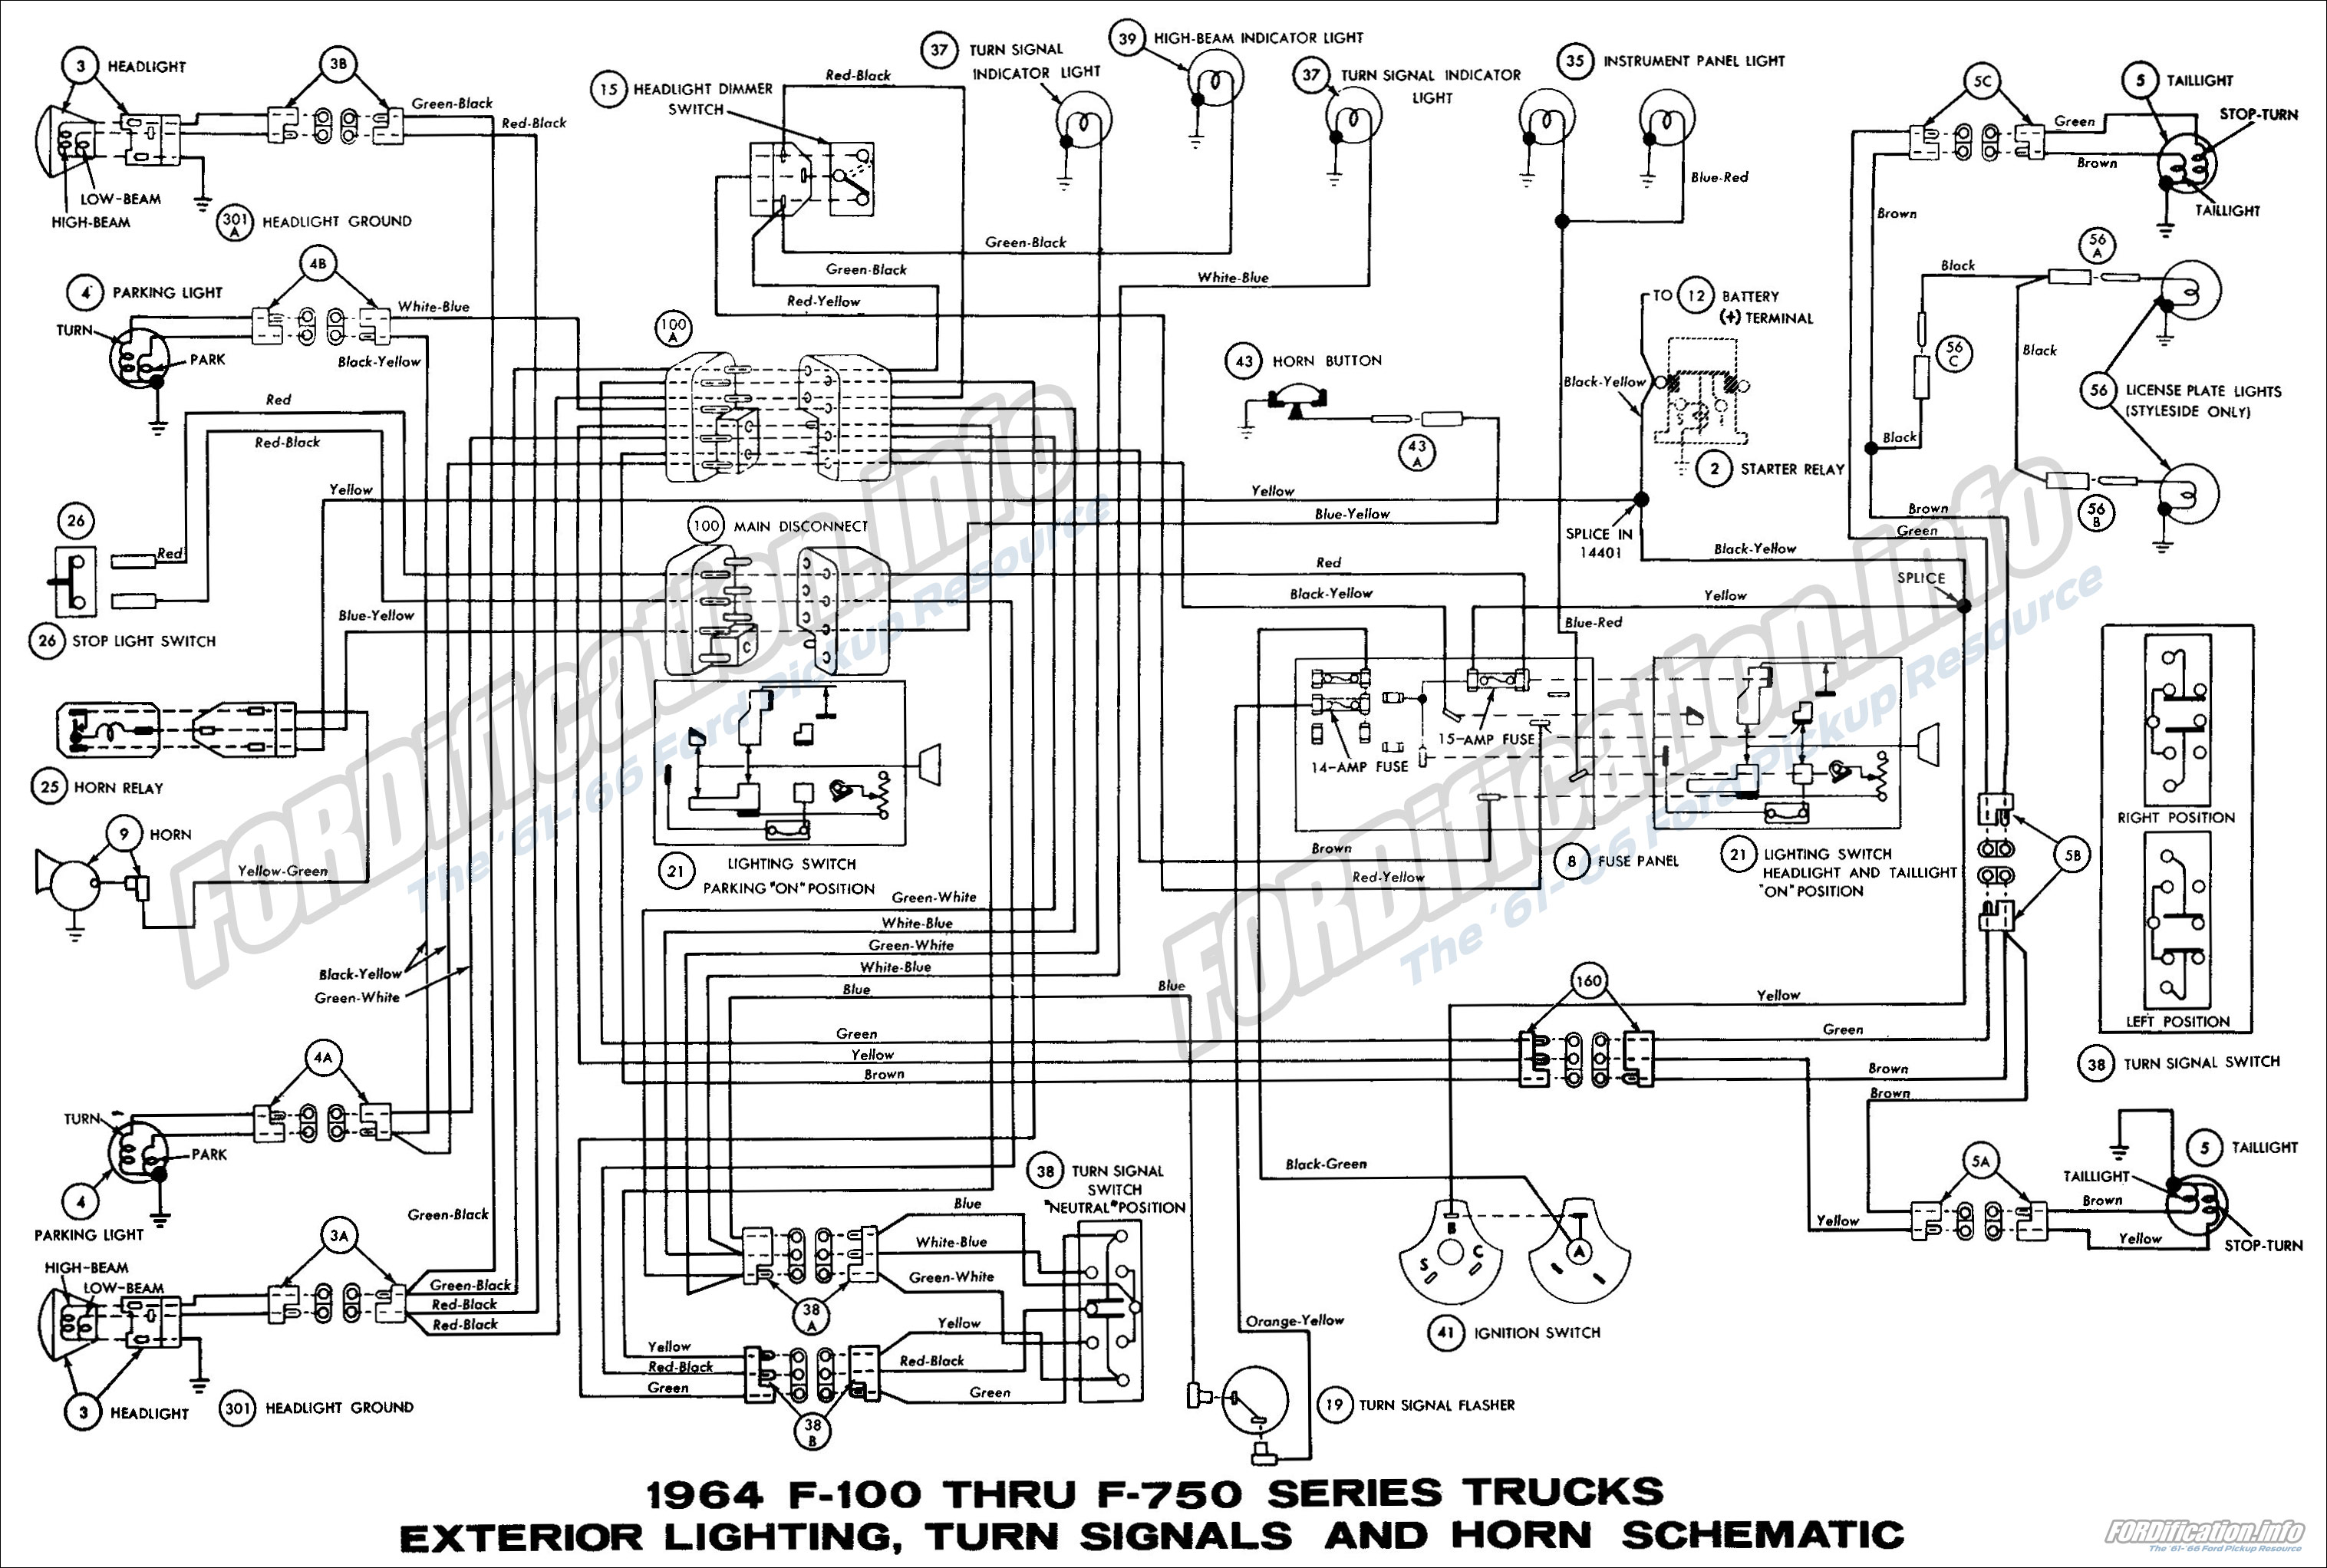 1964_09 1964 f100 wiring diagram 1965 f100 wiring diagram \u2022 free wiring Basic Electrical Wiring Diagrams at soozxer.org